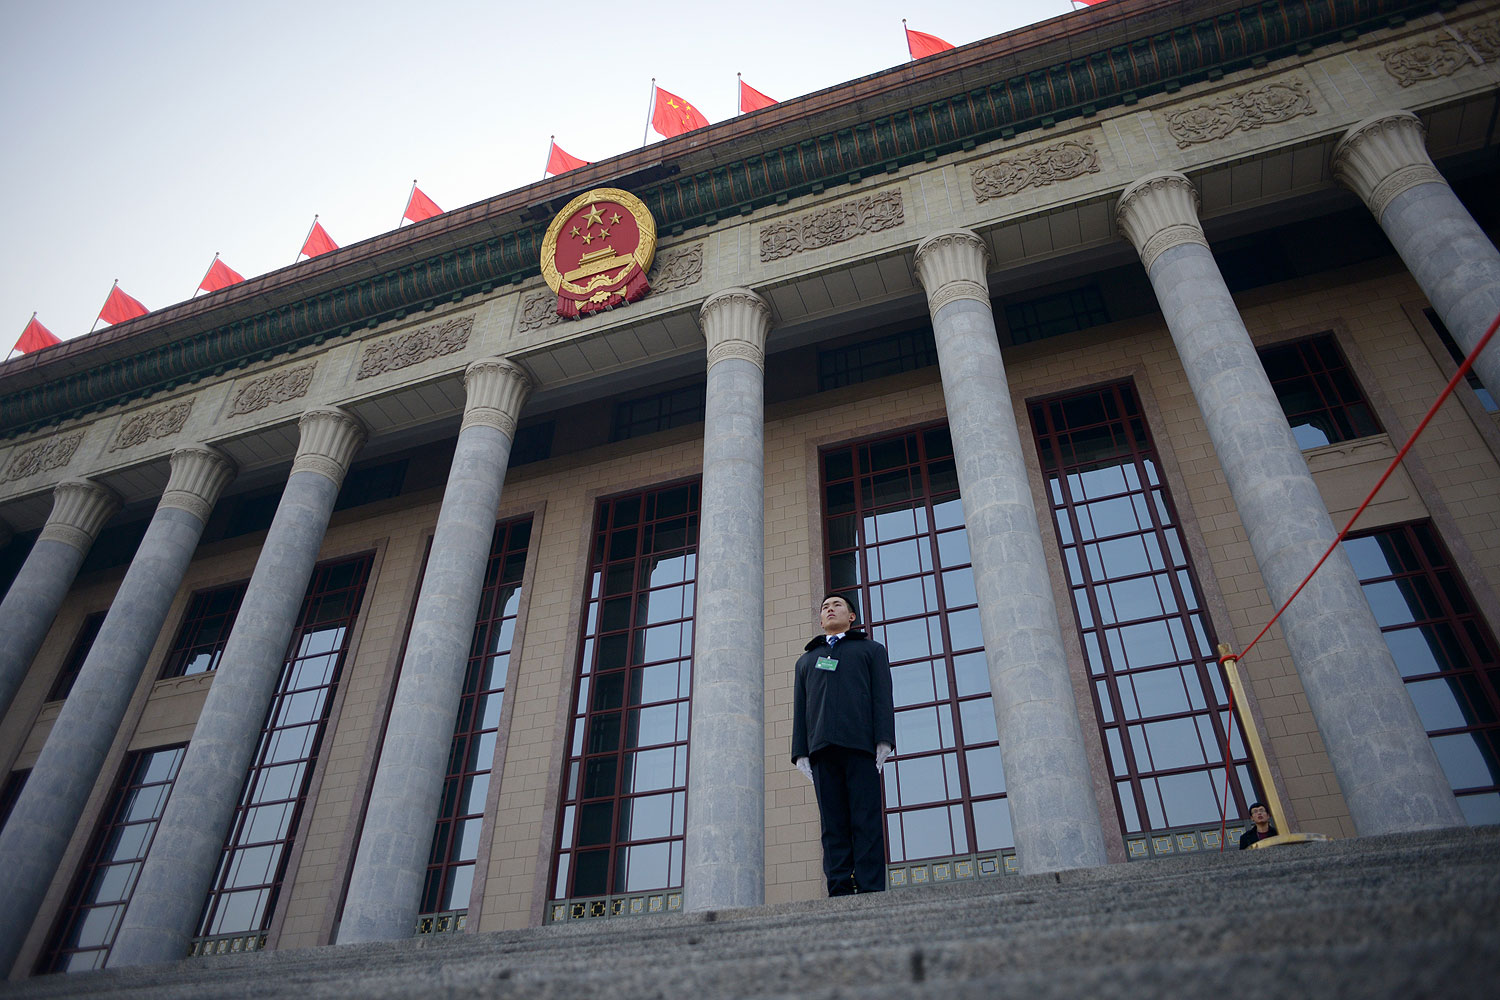 A security guard stands in front of The Great Hall of the People before the upcoming opening sessions of the National People's Congress (NPC) in Beijing on Mar. 2, 2014